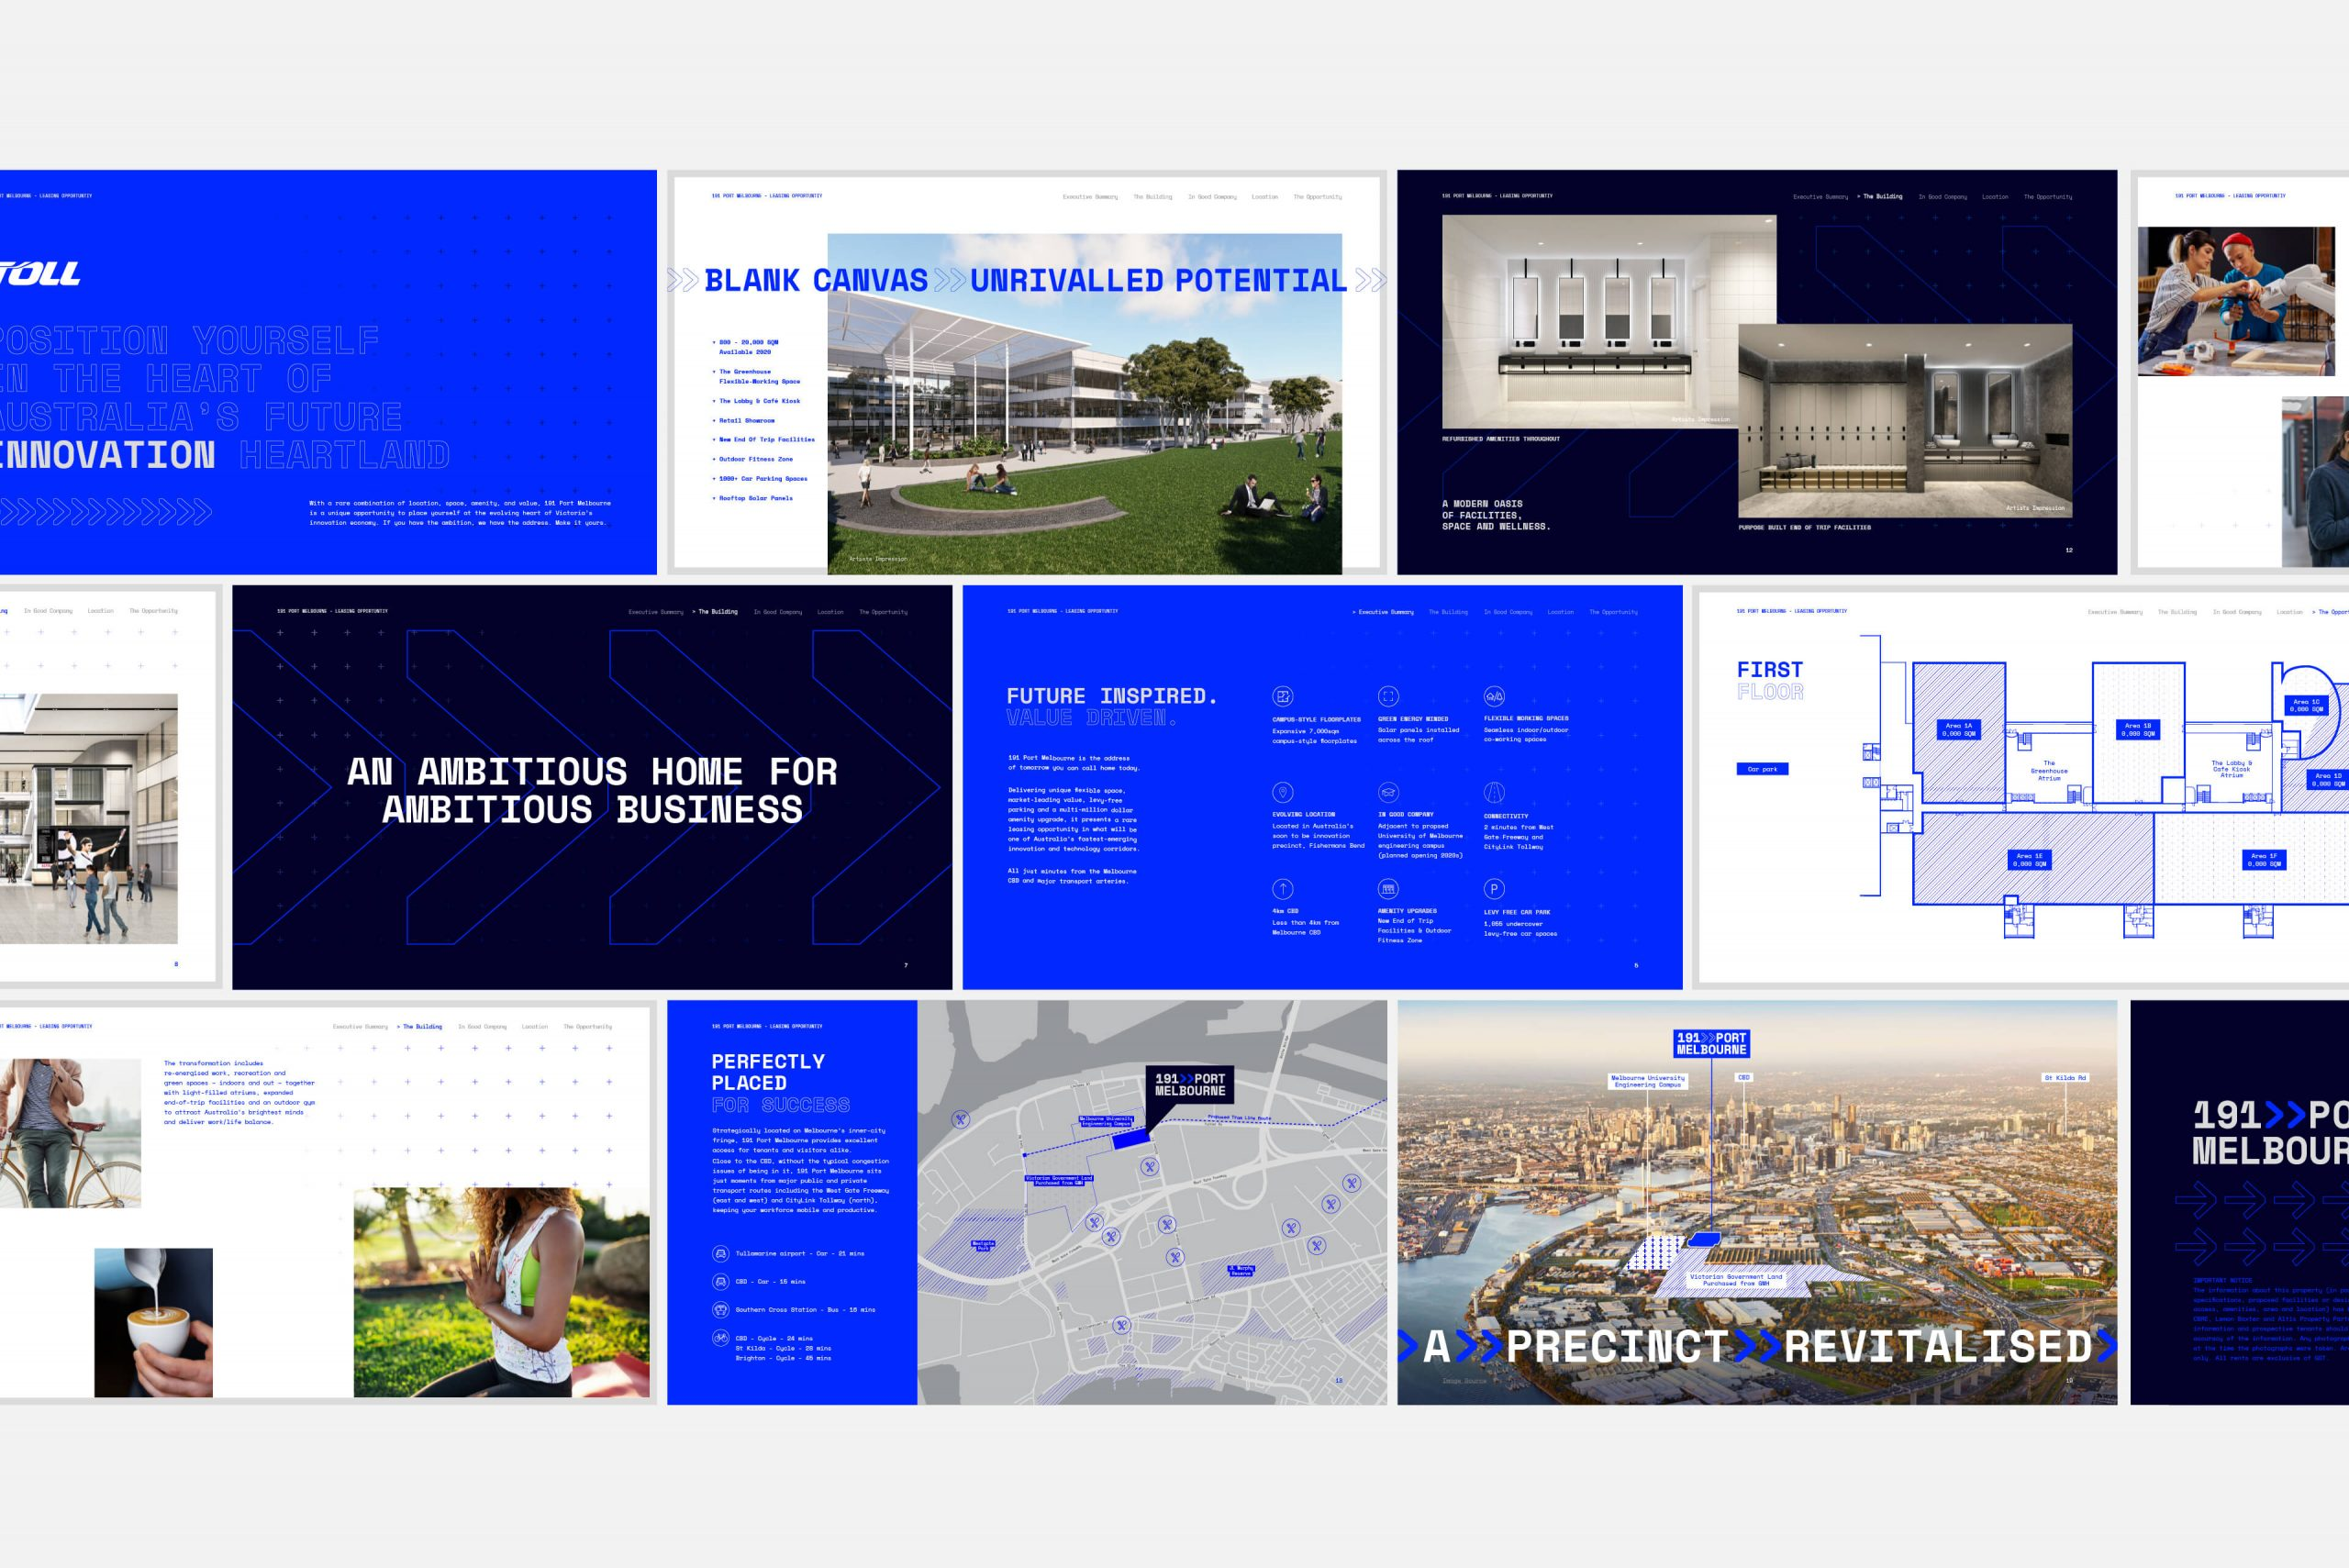 191 Port Melbourne - Property Brand Identity - Digital IM Brochure Design Key Spreads Overview